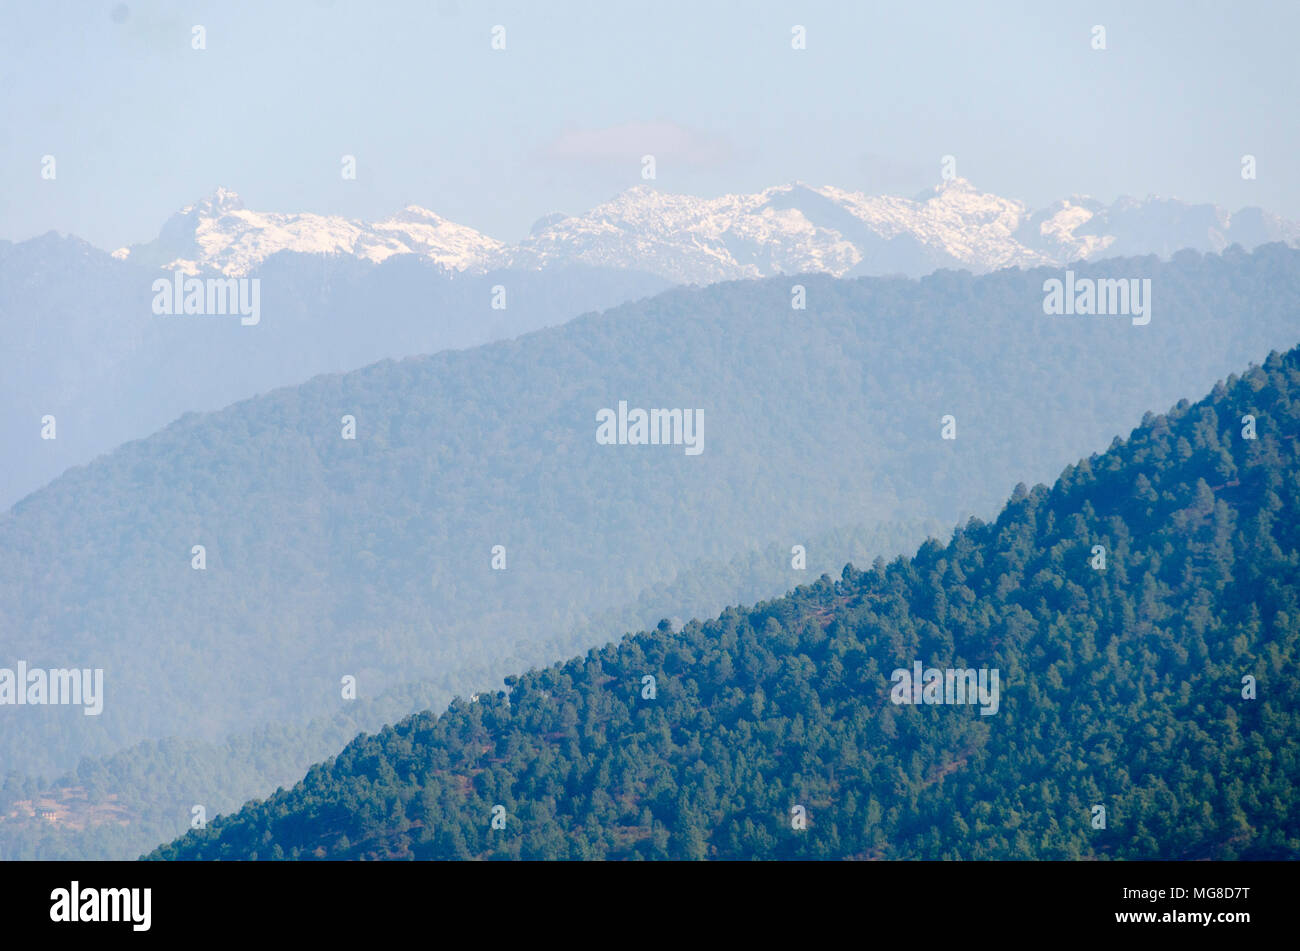 Misty ranges and snow capped mountains, Punakha, Bhutan - Stock Image